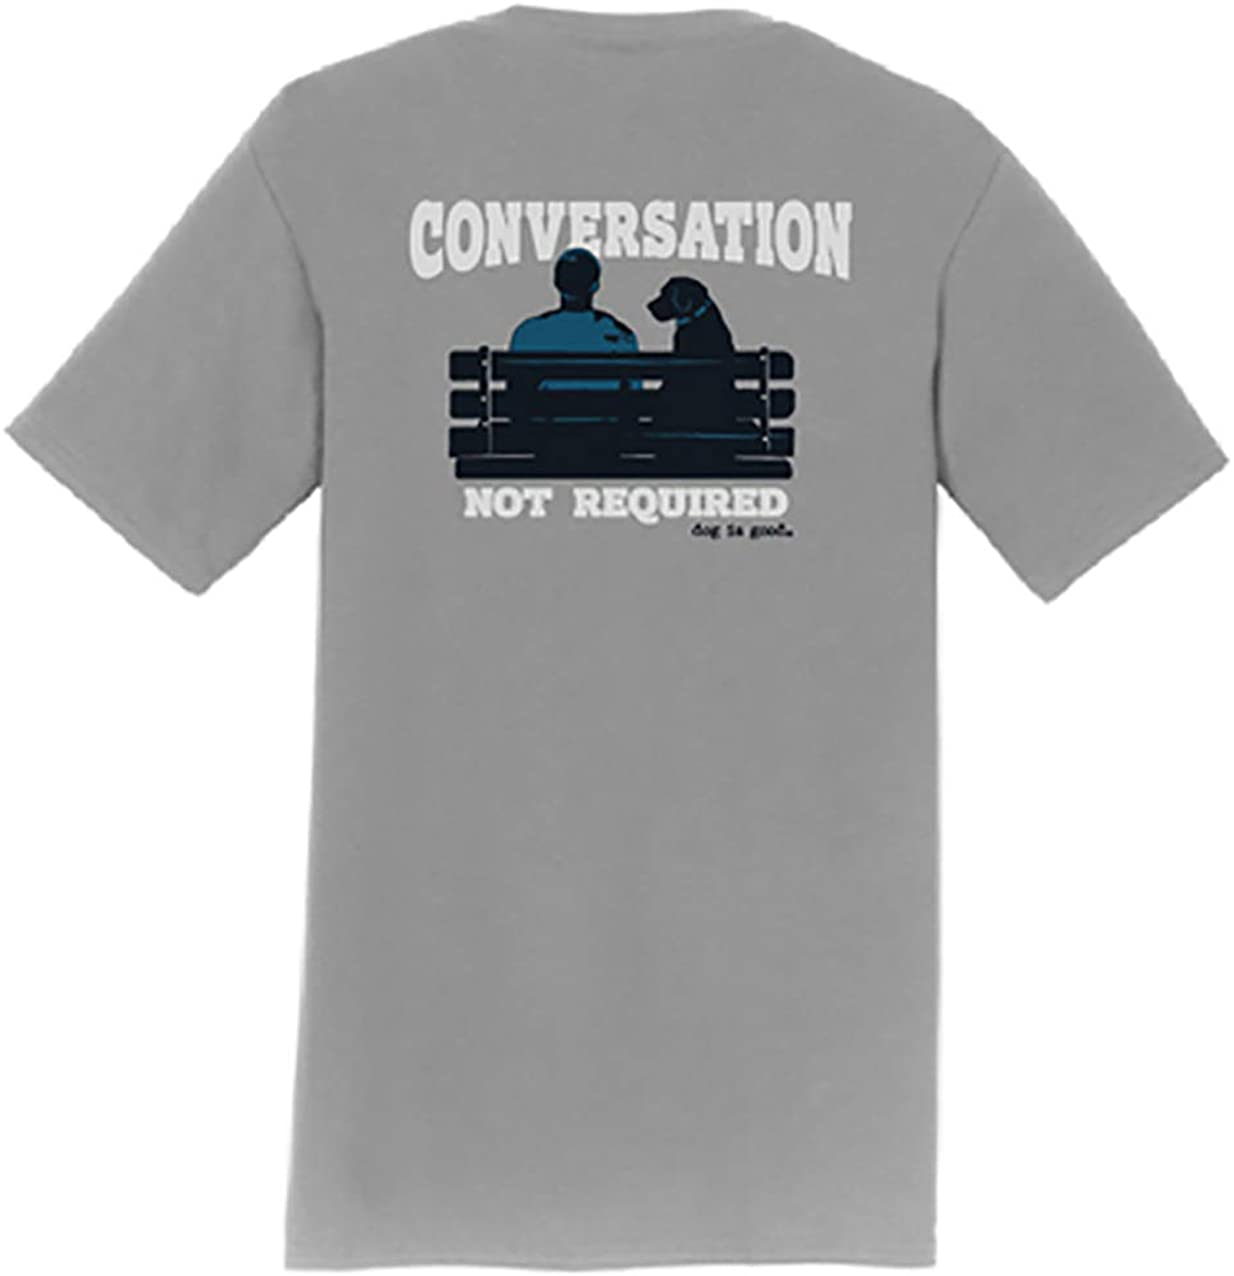 Dog is Good Conversation Not Required Unisex T-Shirt - Great Gift for Dog Lovers